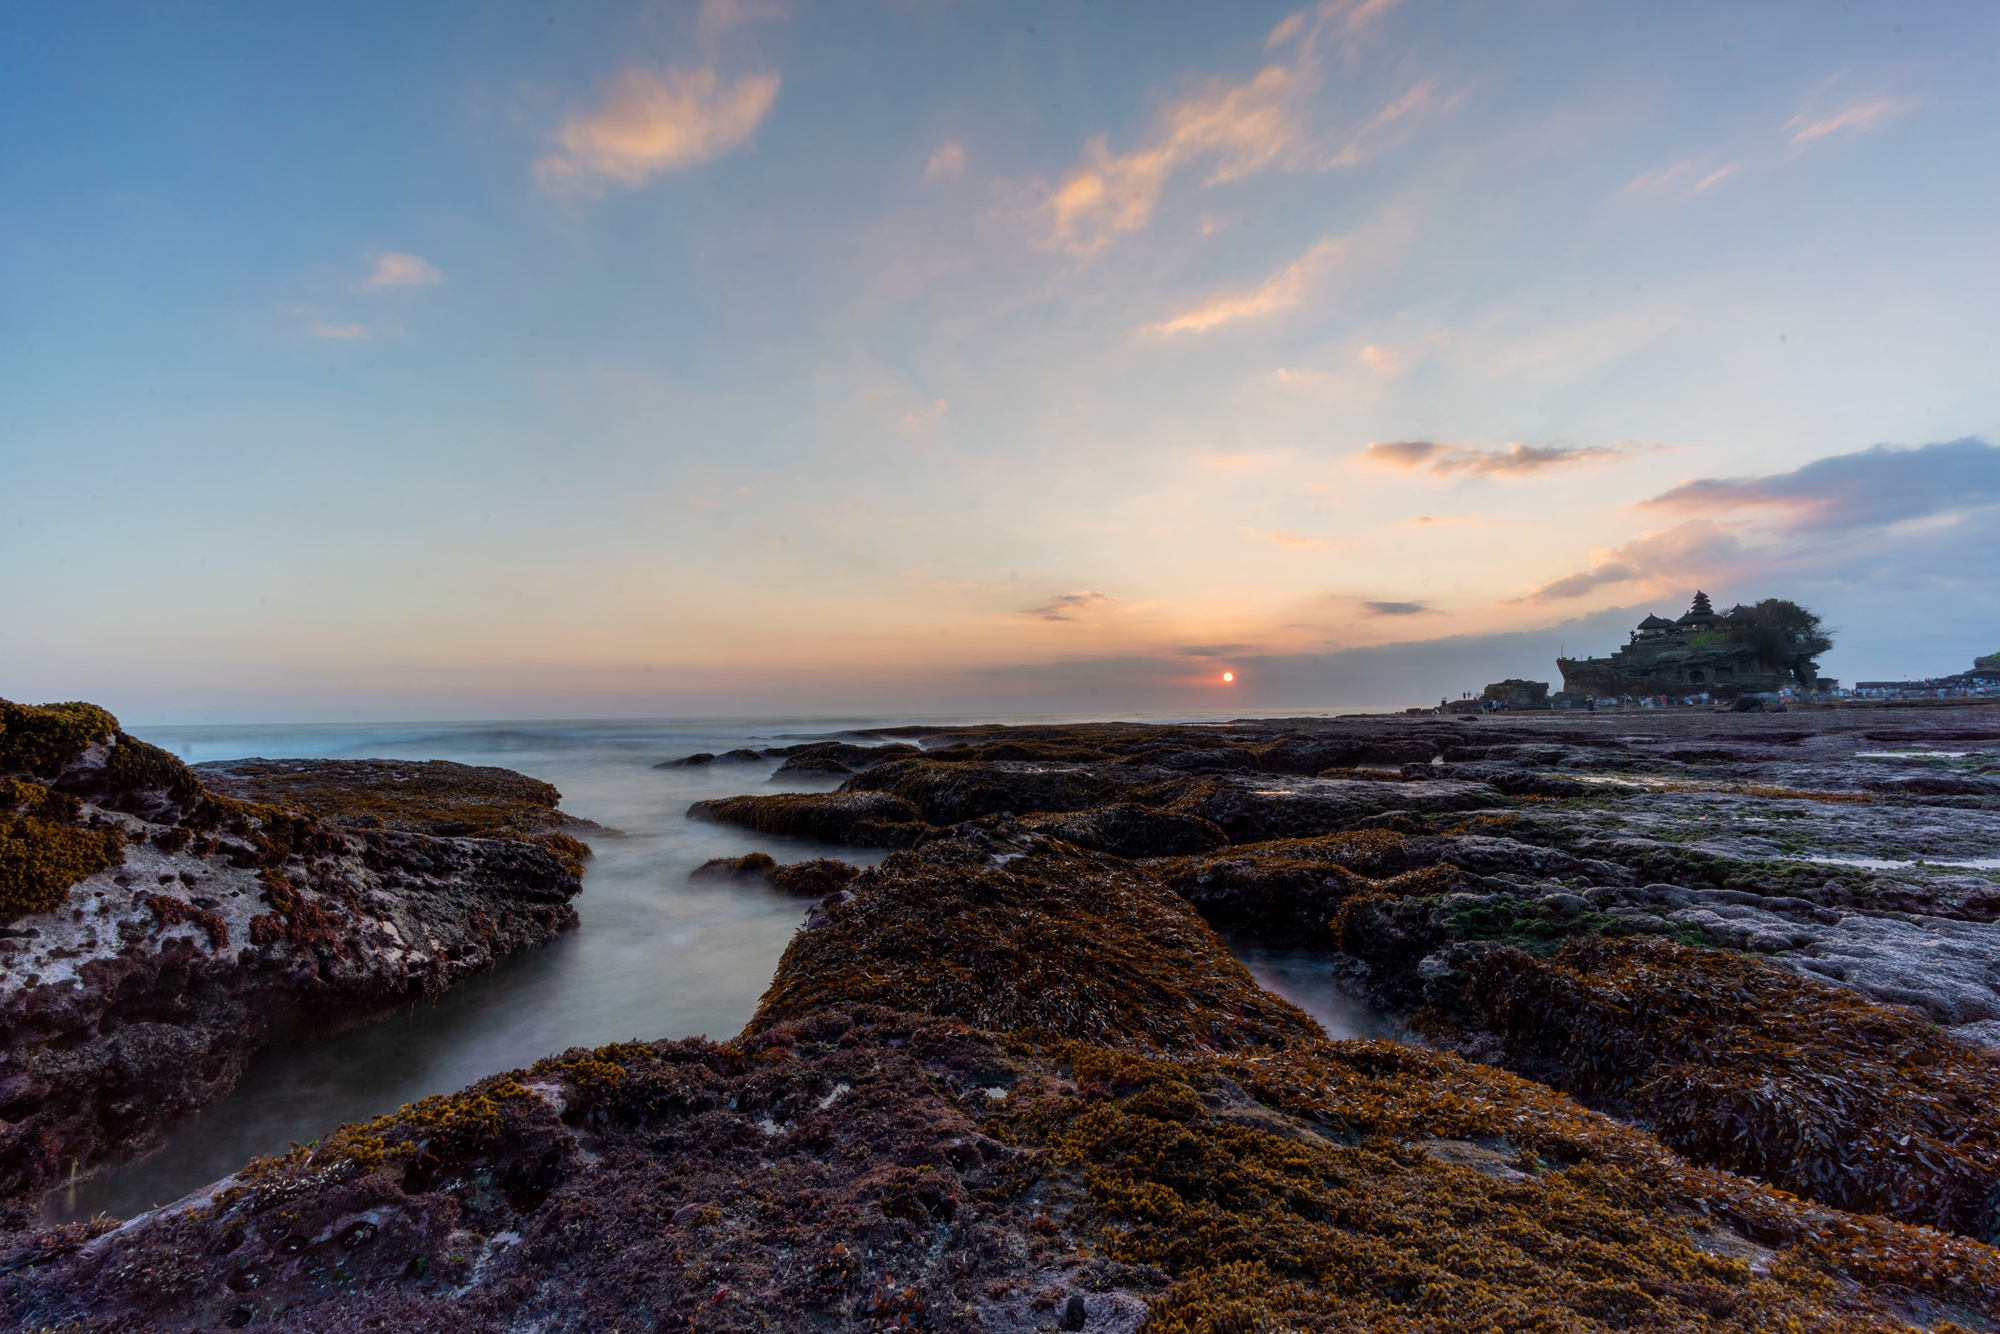 Five best spots for stunning photos in Bali - CGTN